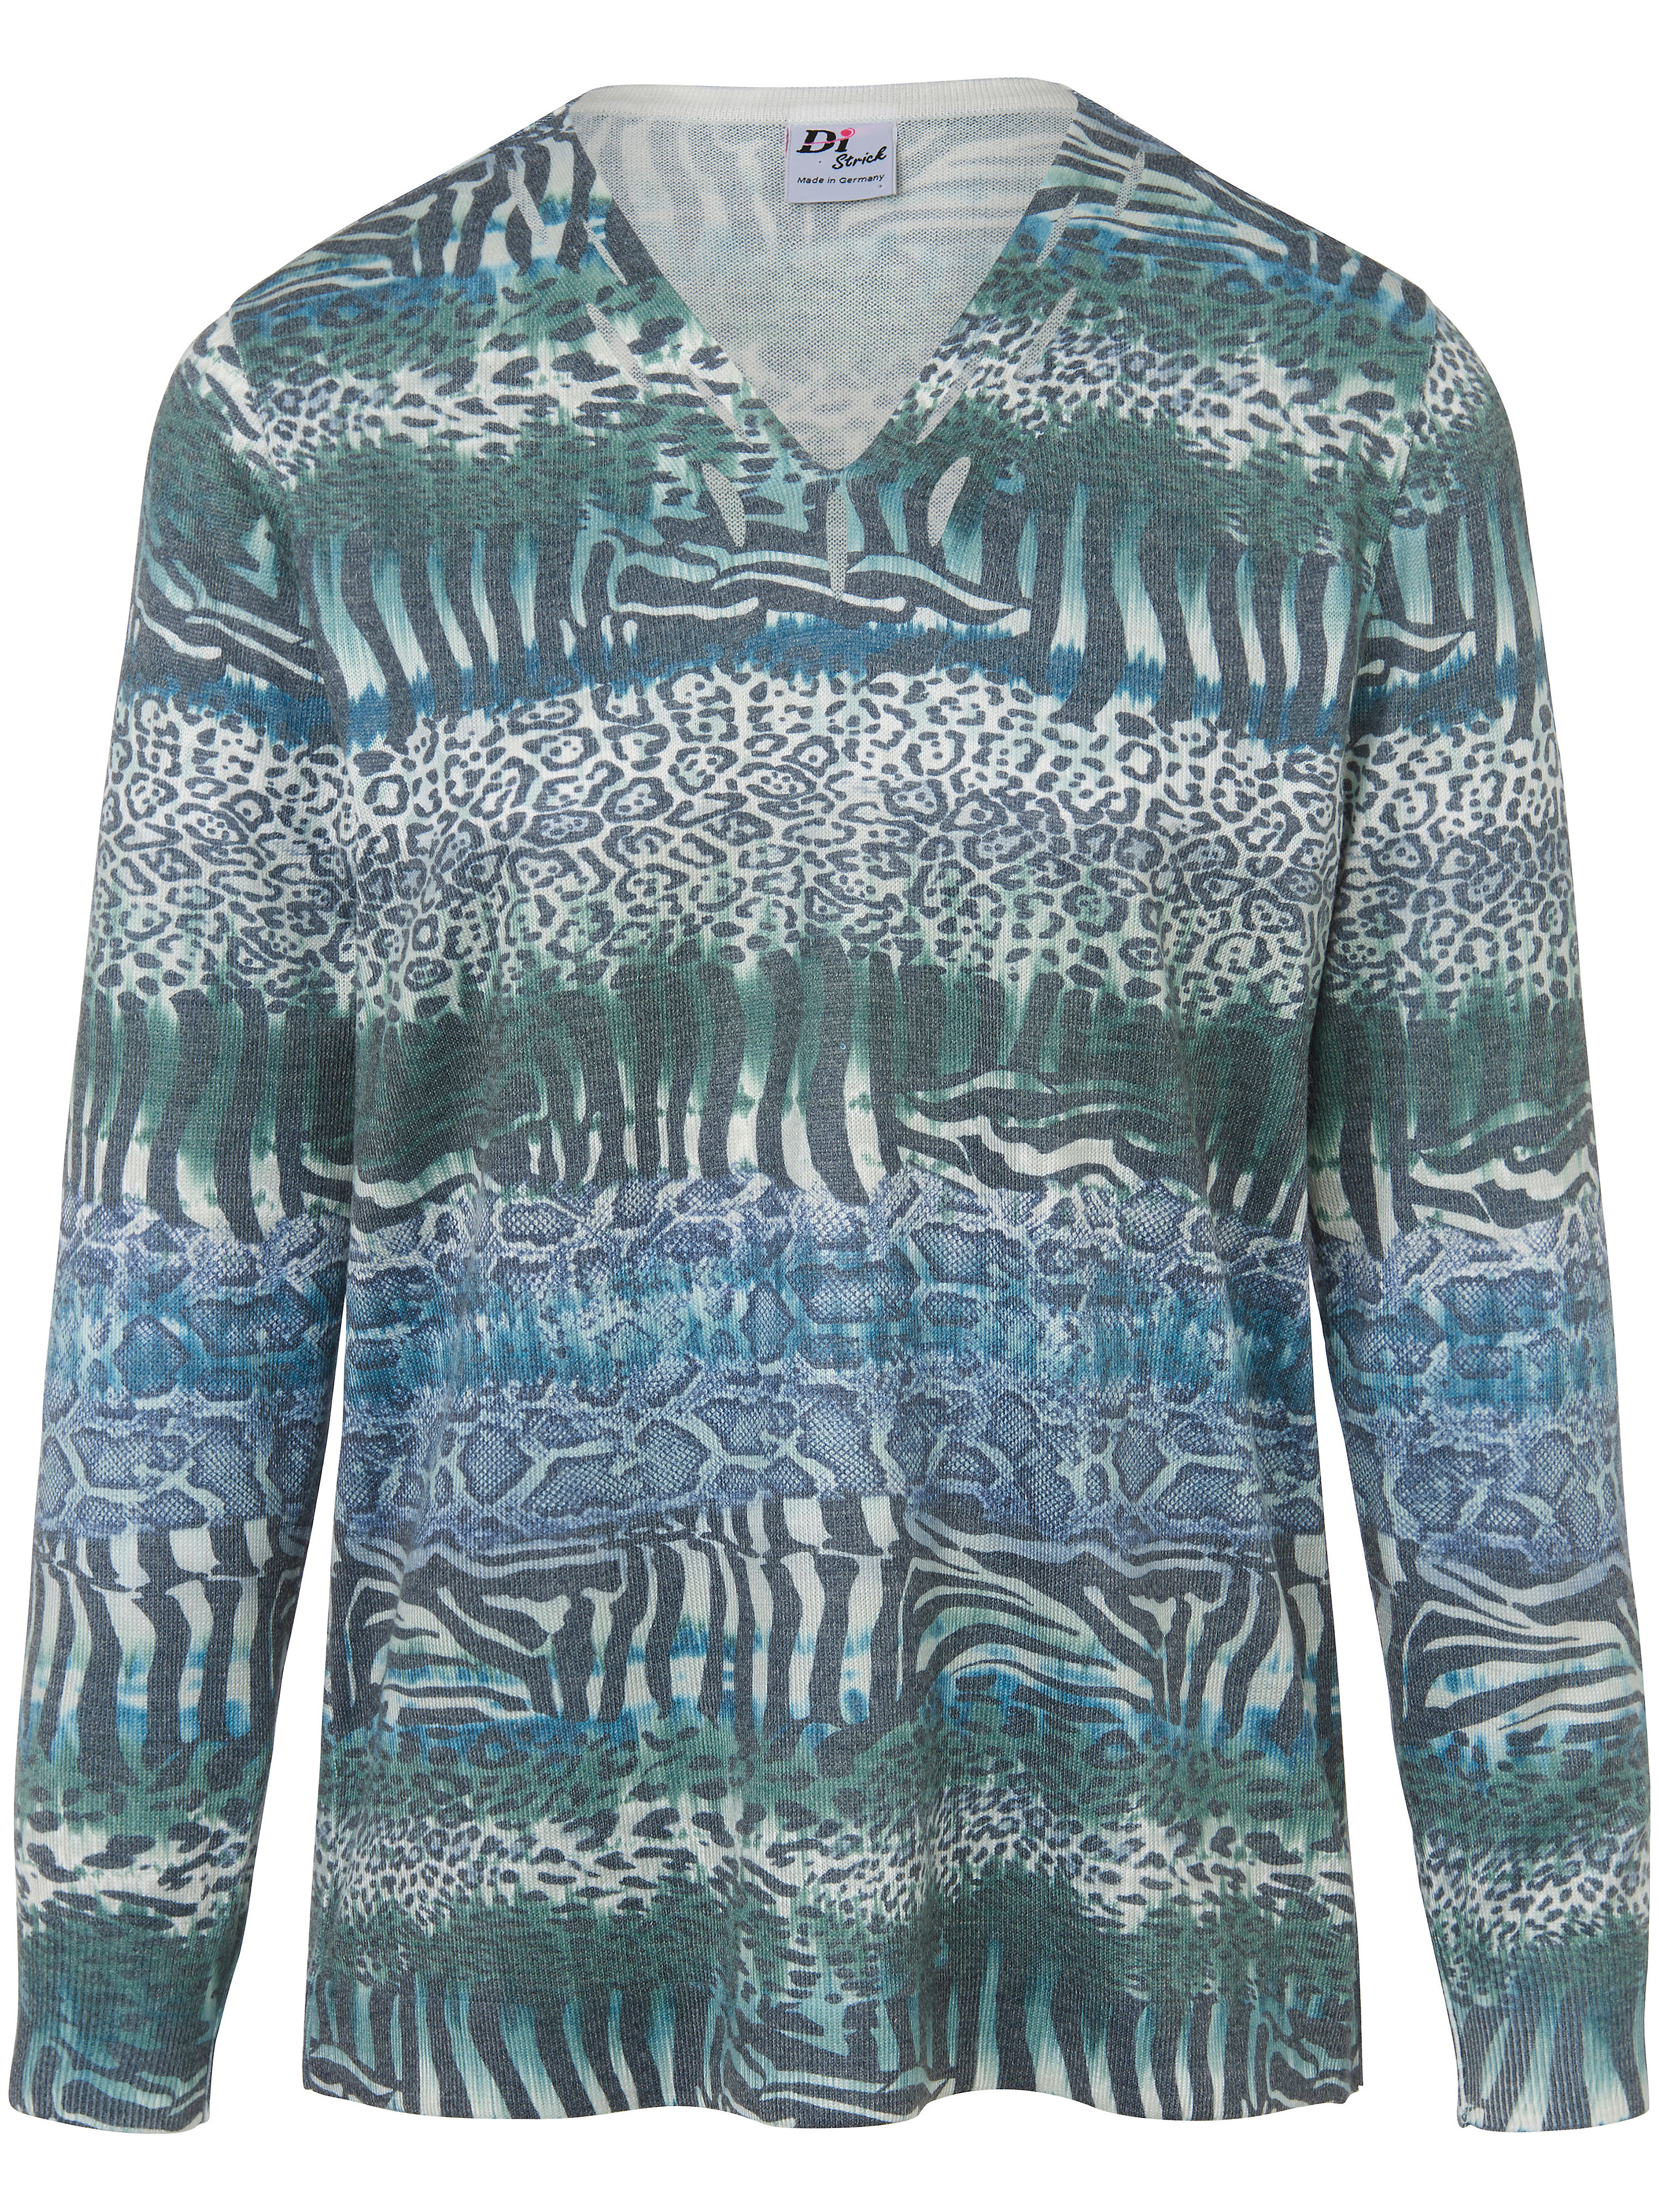 Le pull  Dingelstädter multicolore taille 38